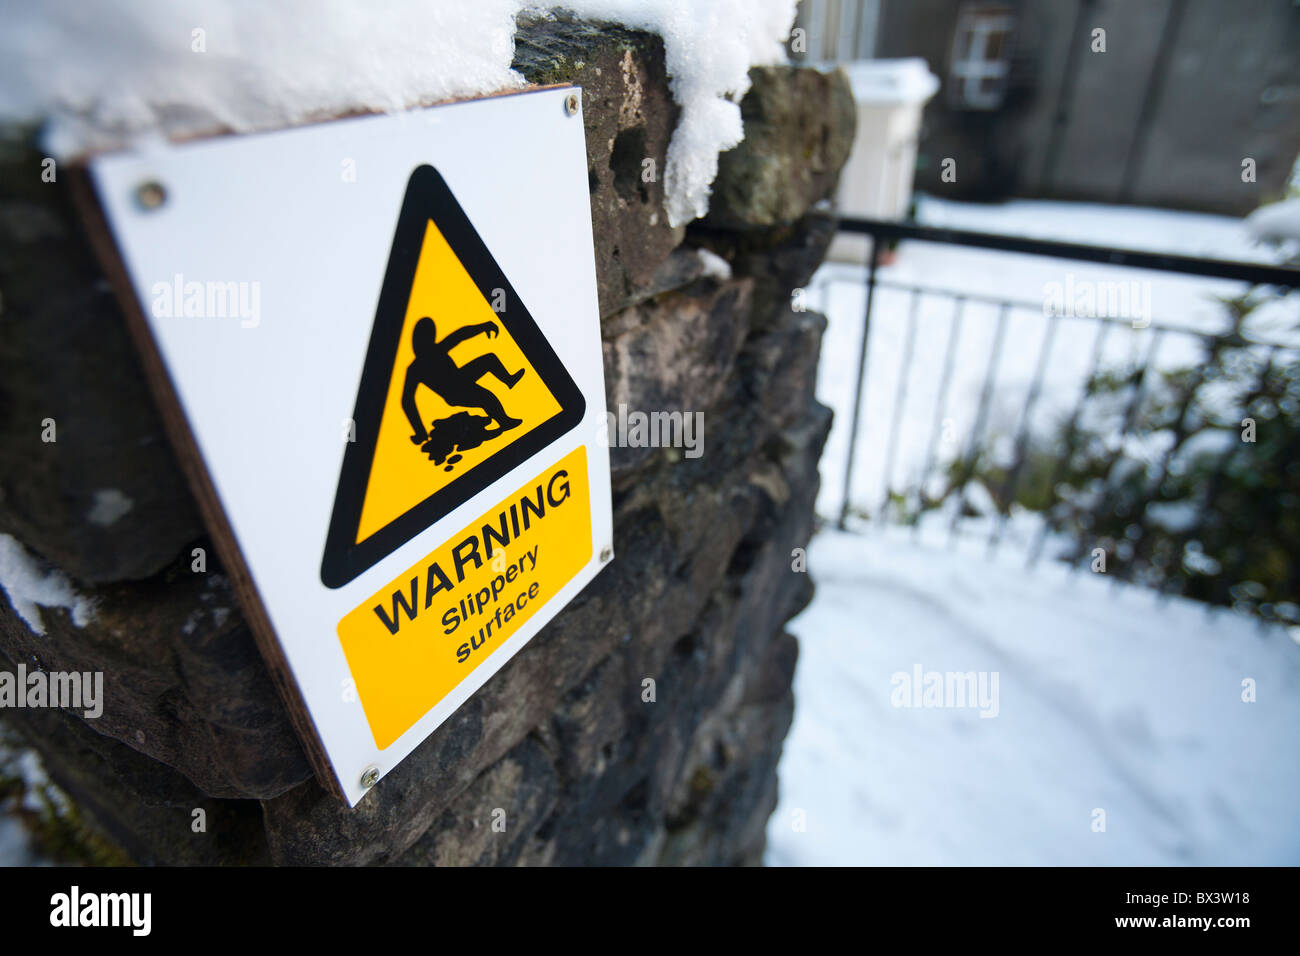 A slippery warning sign at Rydal Hall, Lake District, UK. - Stock Image